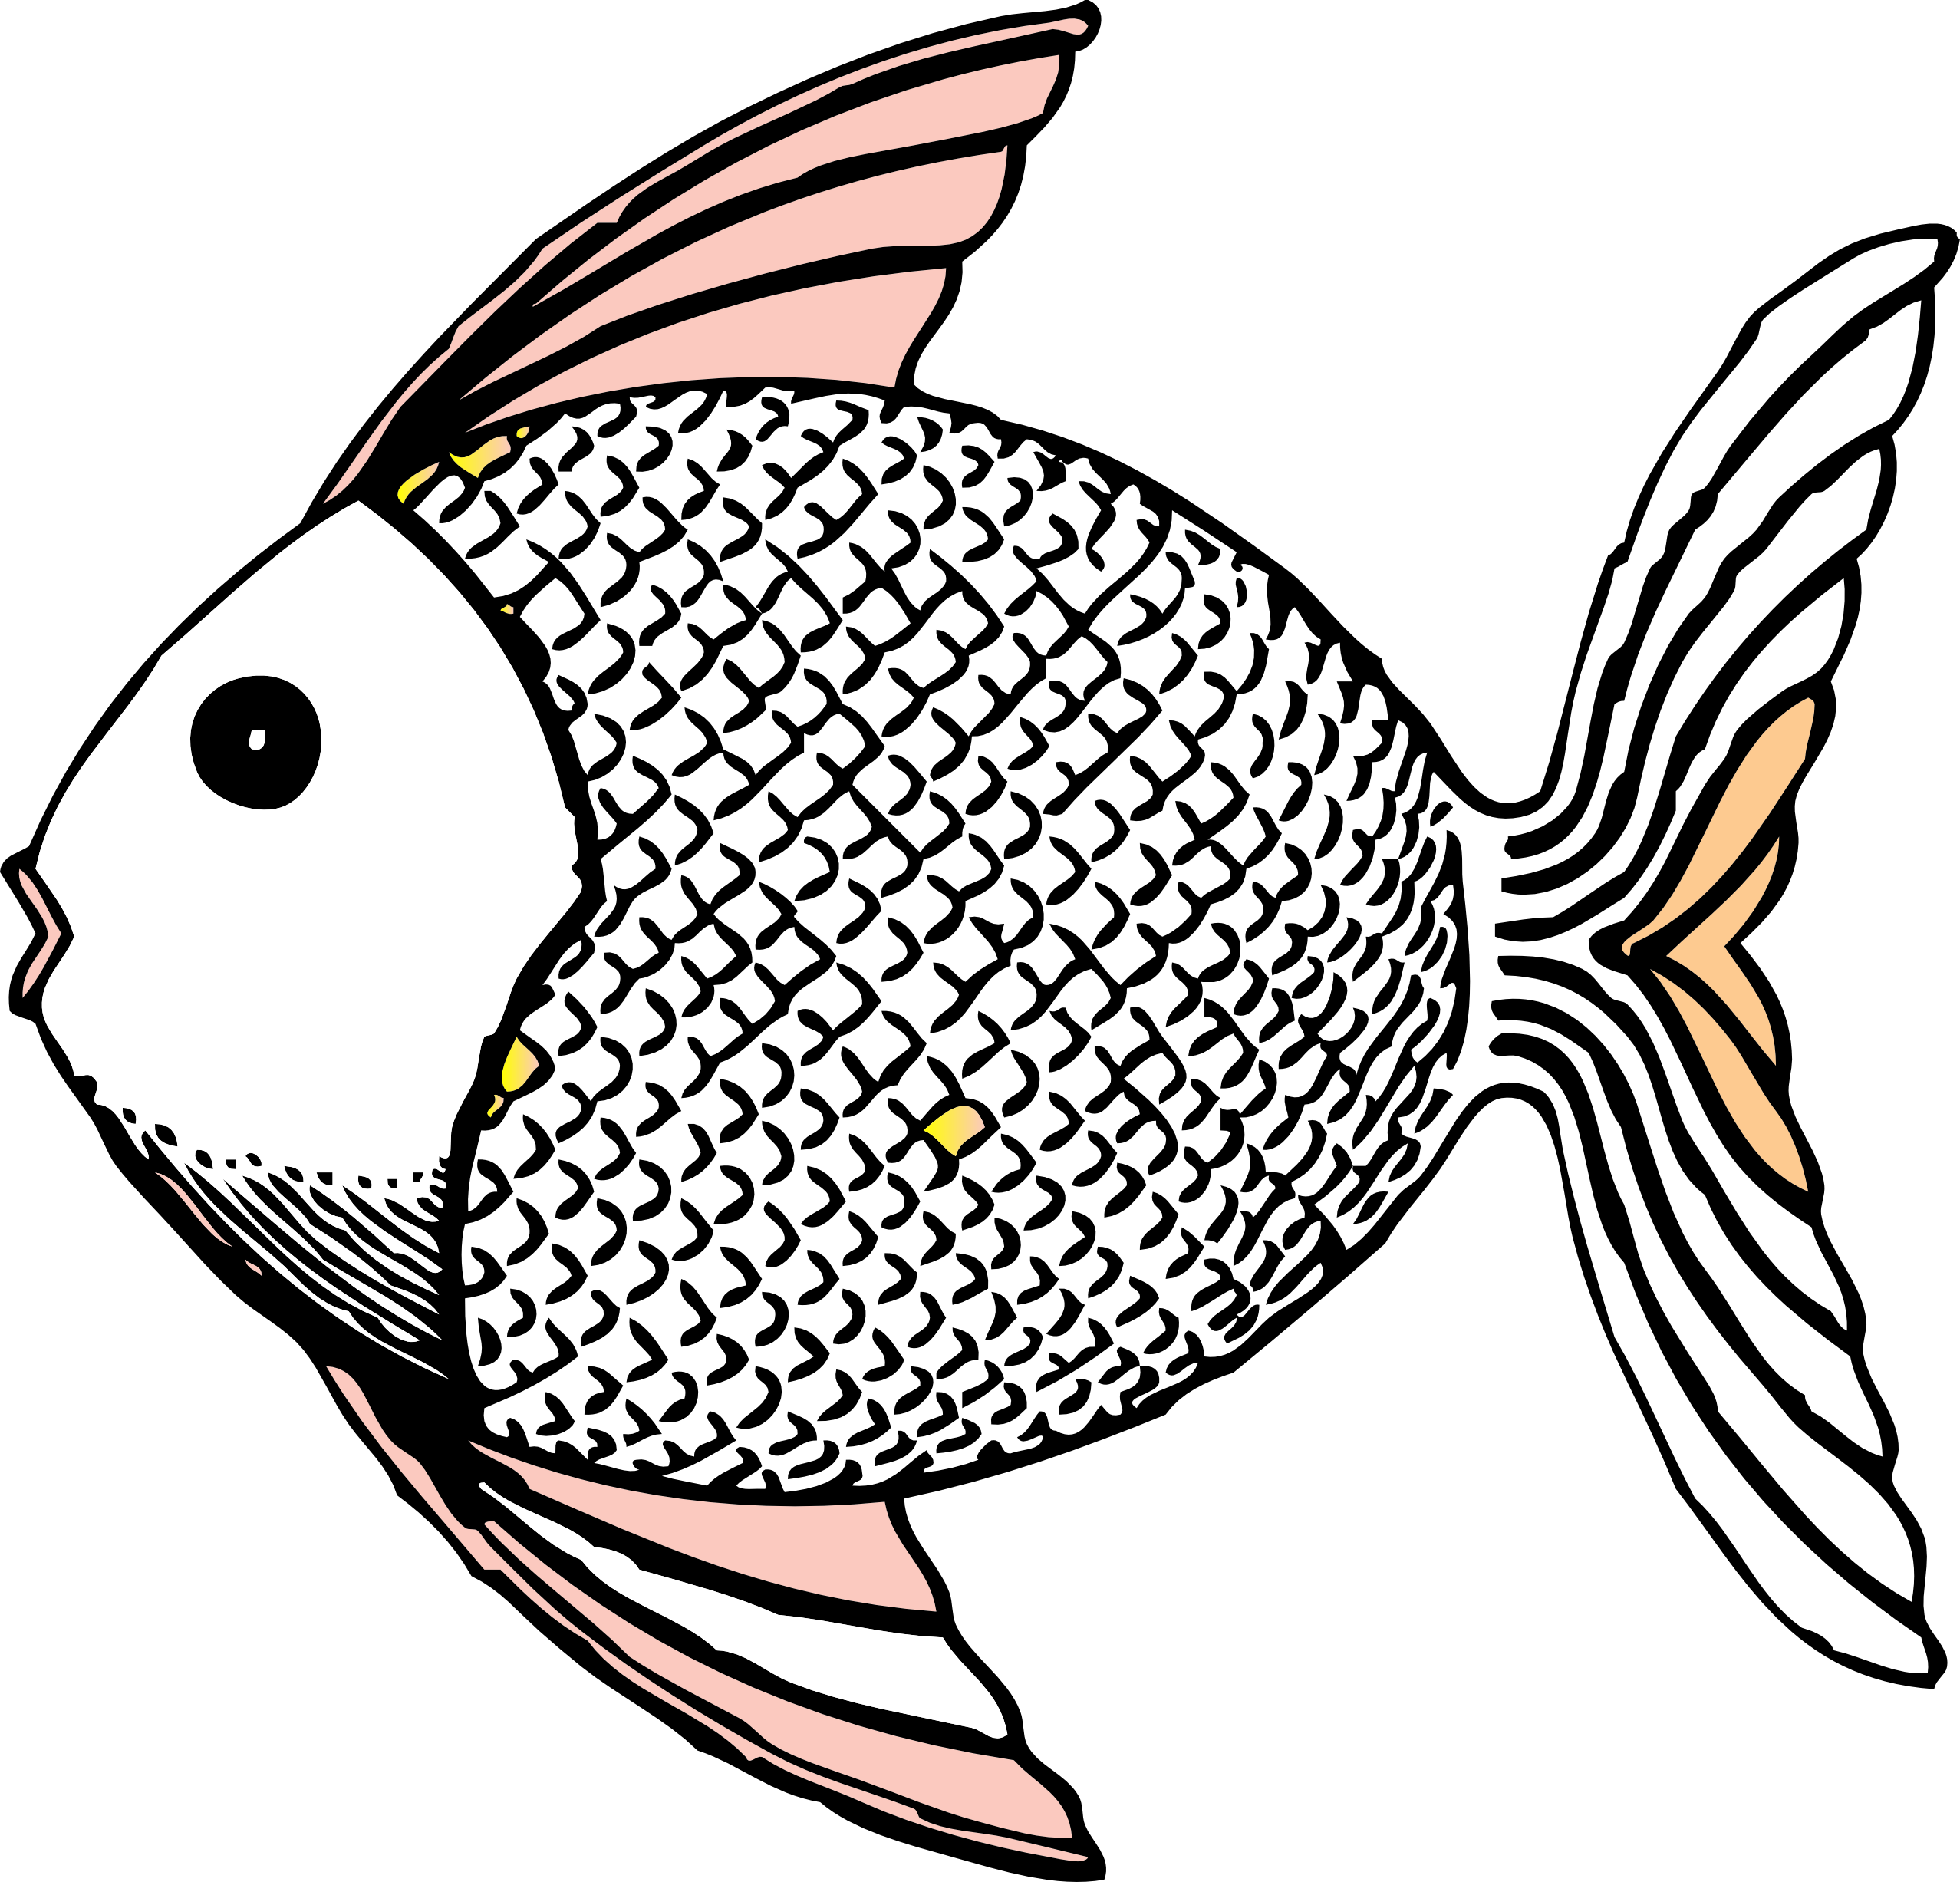 Aztec fish clipart jpg freeuse stock Fish Clip Art Black and White | tropical fish black white line art ... jpg freeuse stock